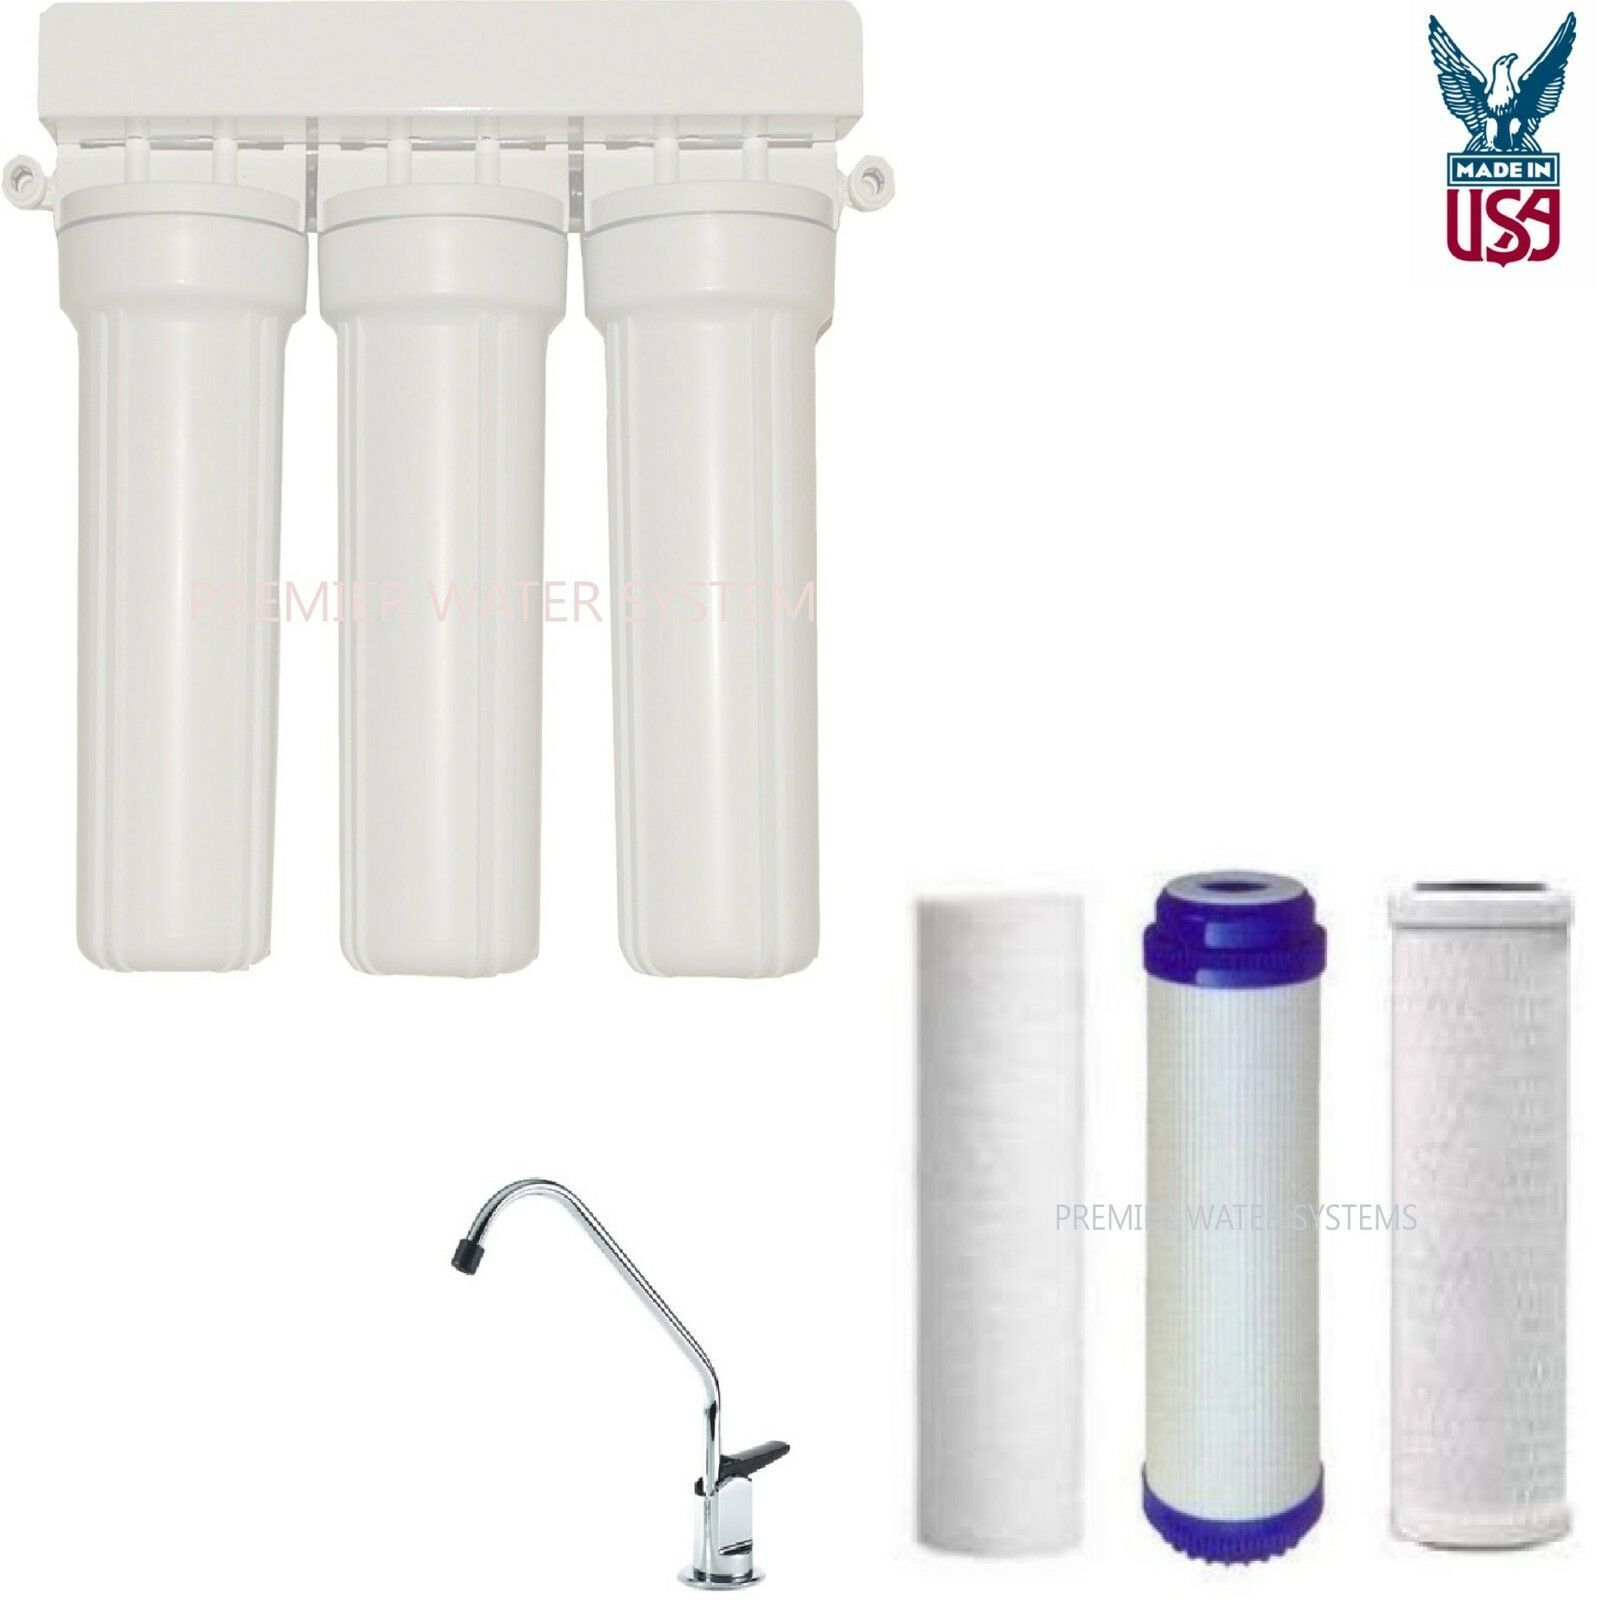 Fluoride And Chlorine Removing Home Drinking Water Filtration System 818368011664 Ebay In 2020 Water Purification System Drinking Water Filter Water Filtration System